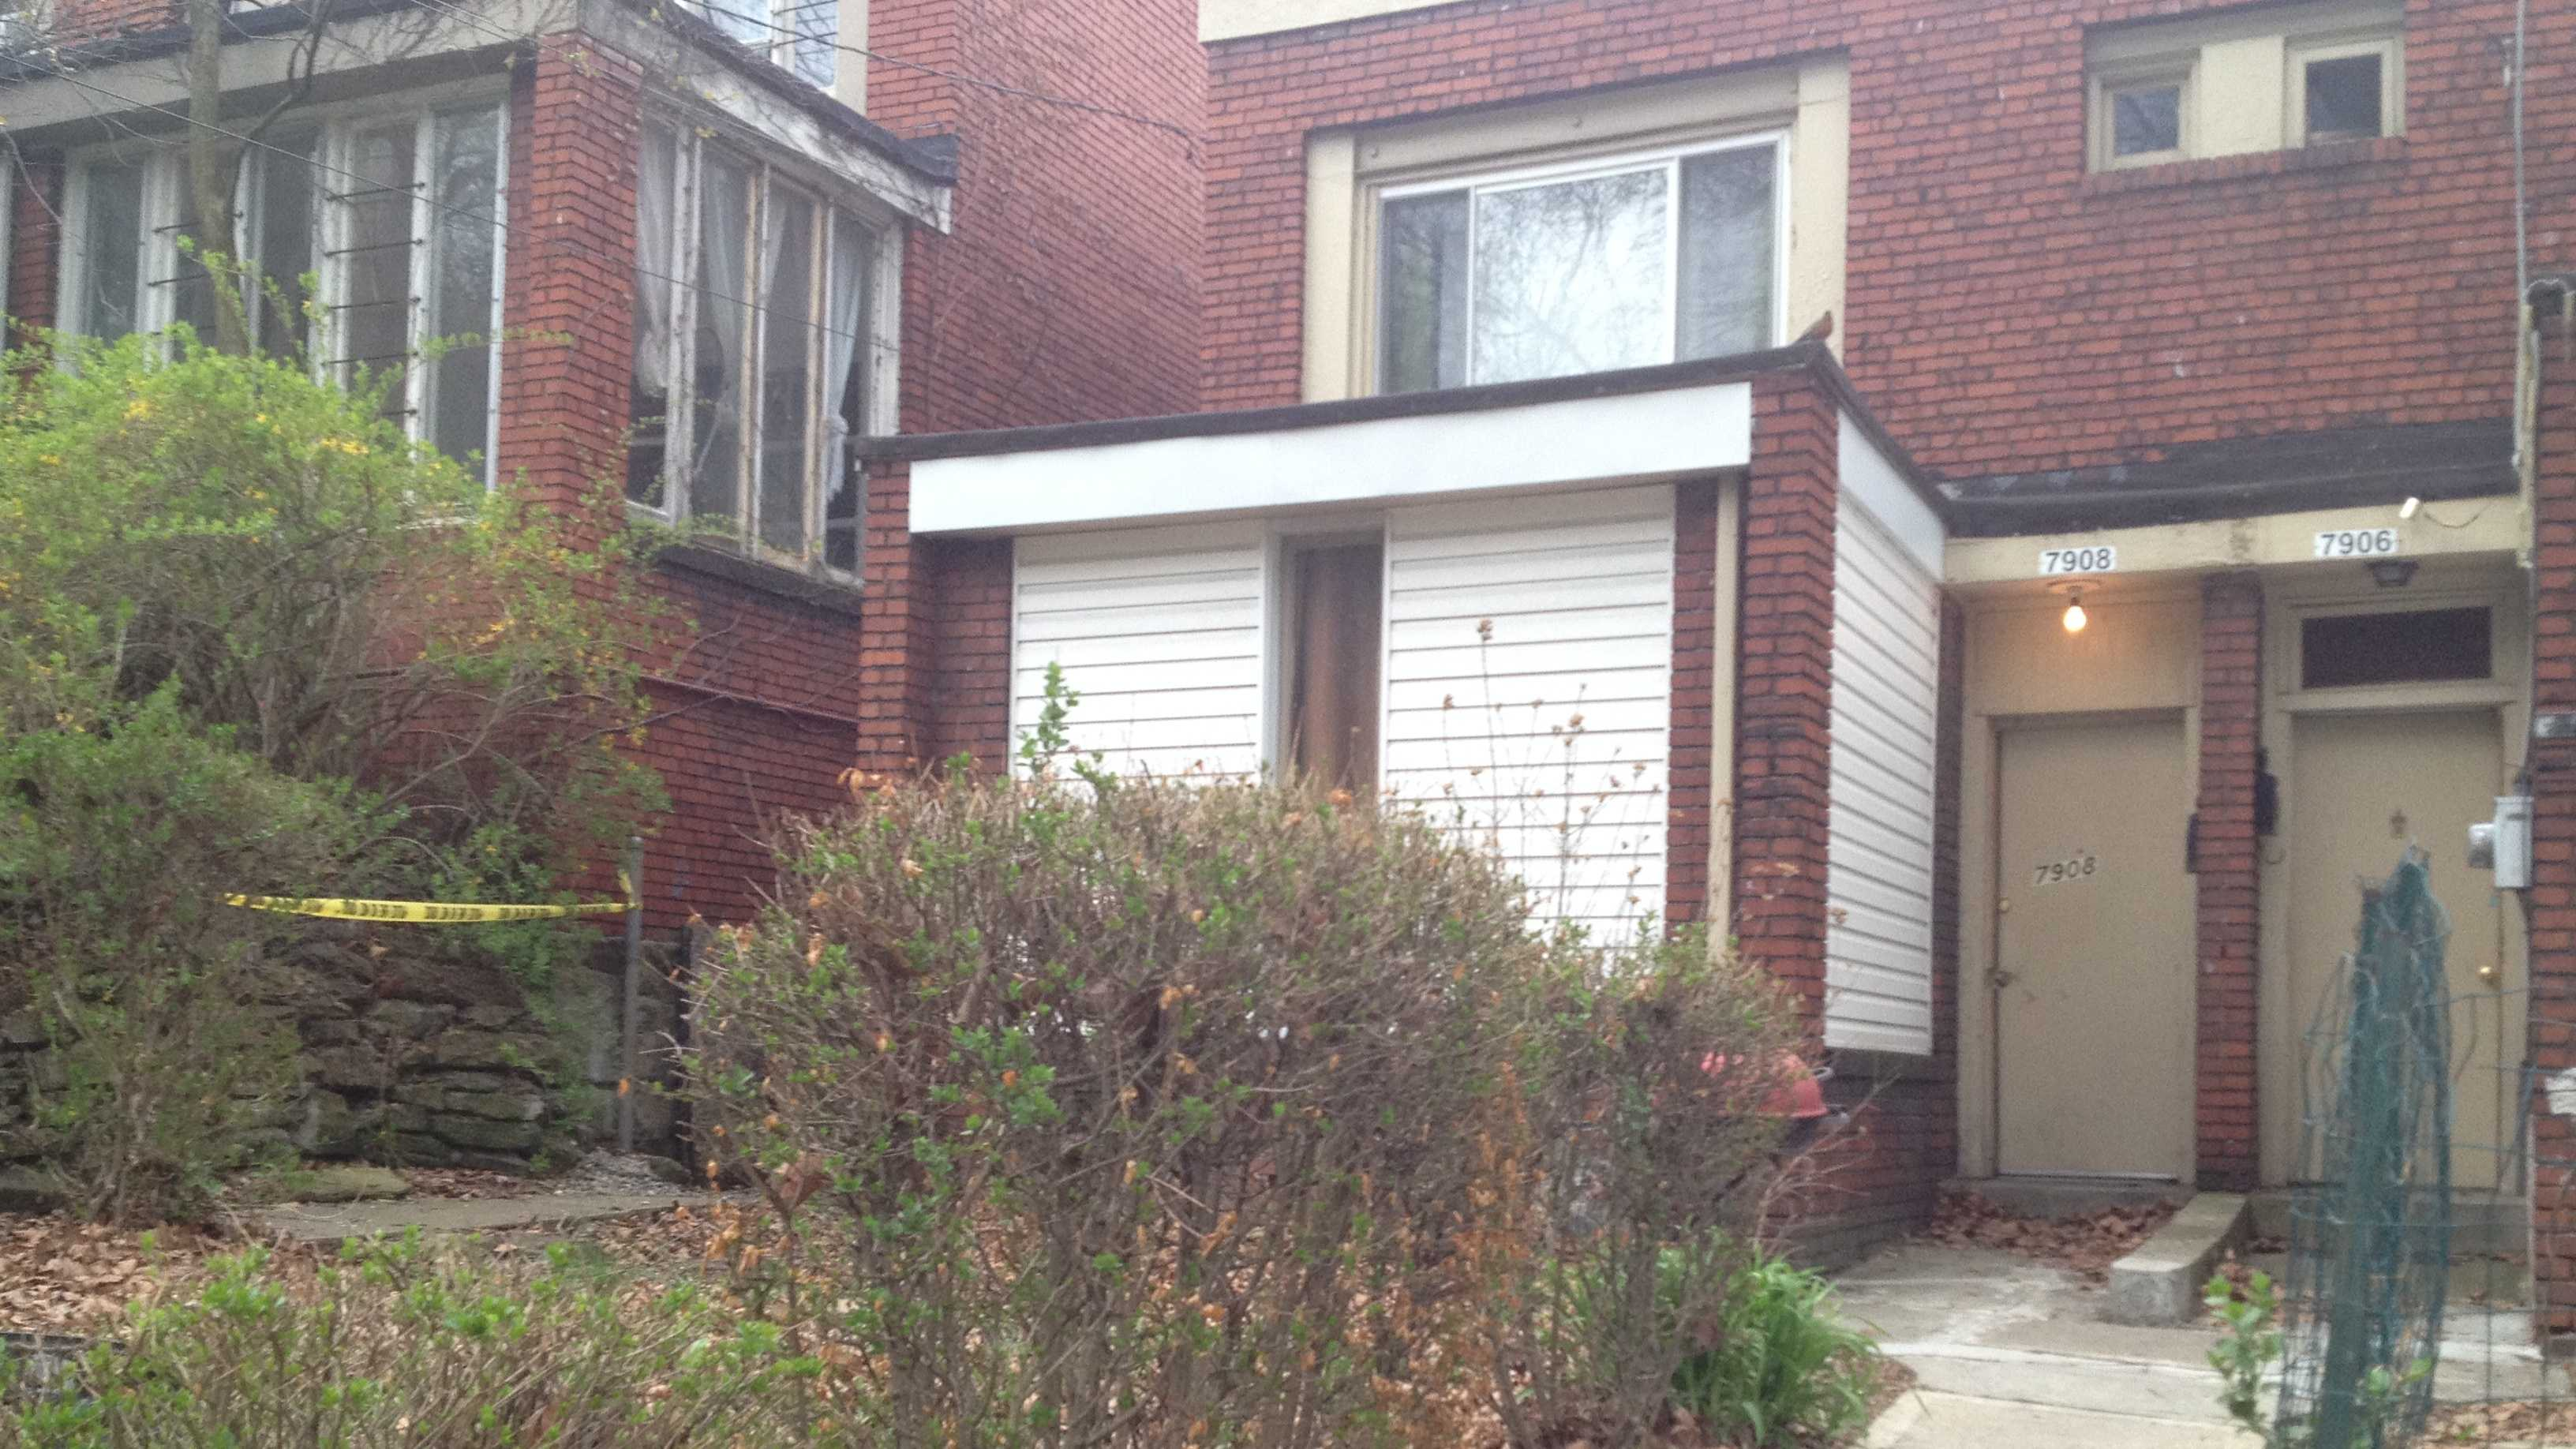 Pittsburgh police say the body of Kerrese Lawrence was found inside this house on Hamilton Avenue in Homewood.